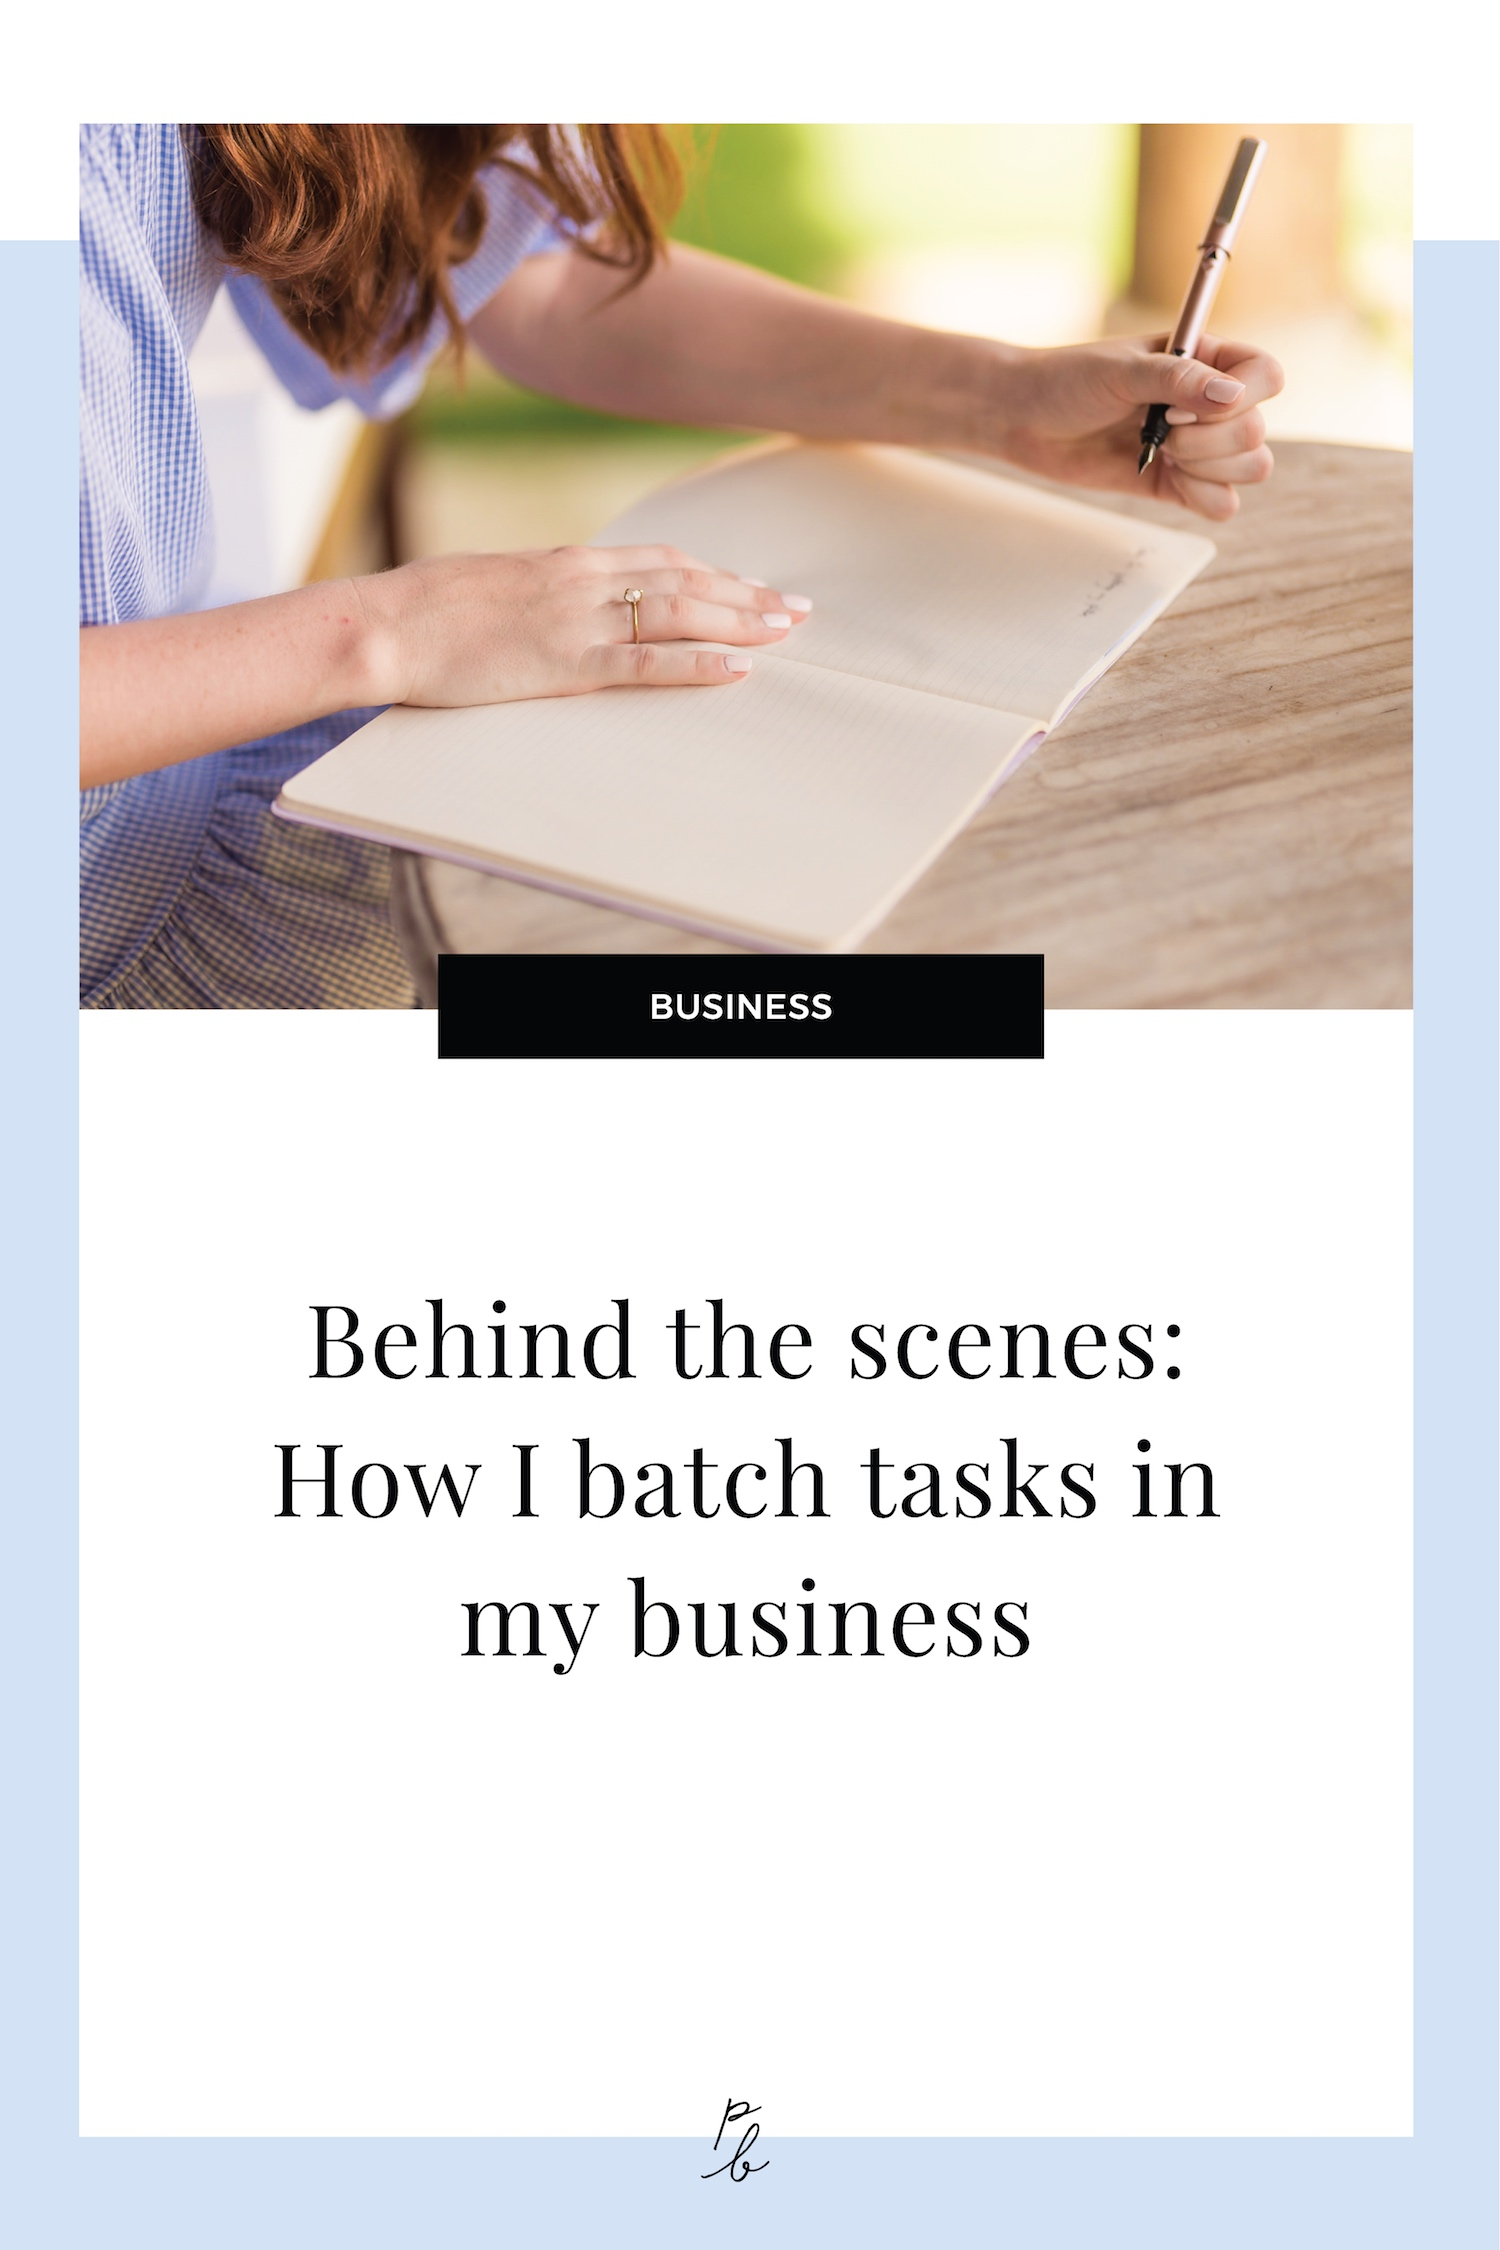 Behind the scenes: How I batch tasks in my business.jpg